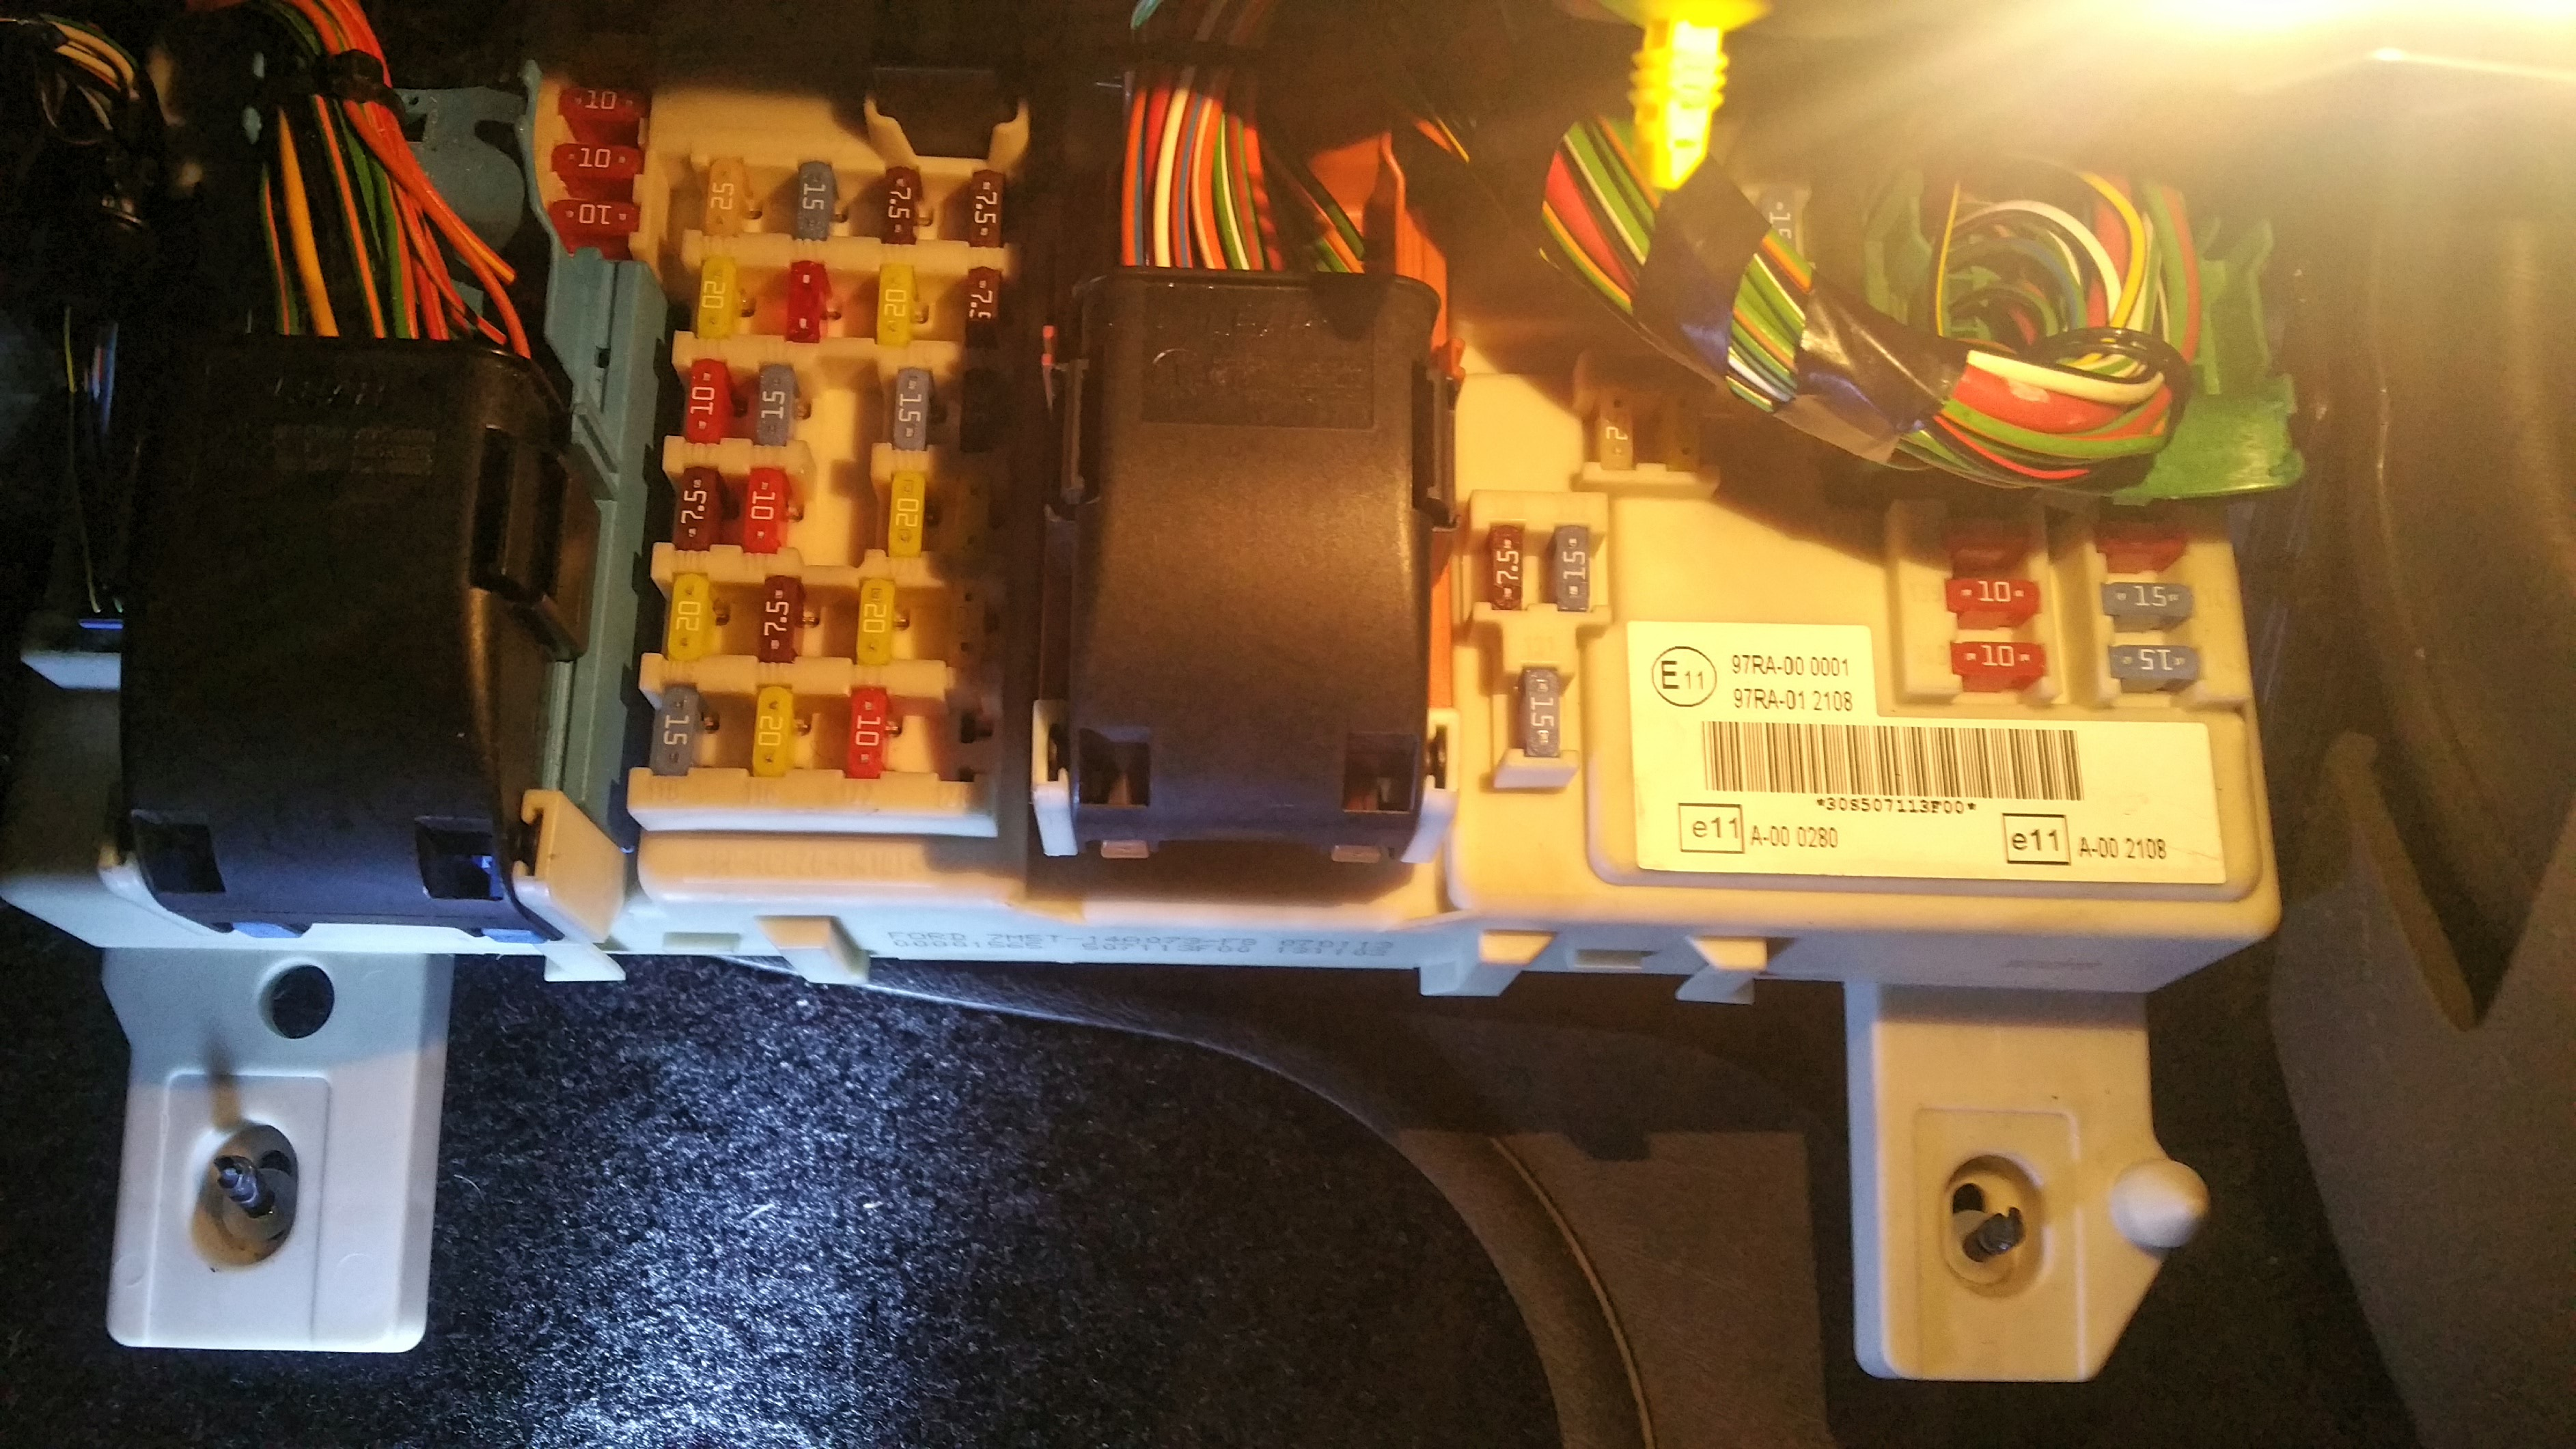 fuse box ford focus 51 plate central    fuse       box    seems wrong     ford       focus    club    ford     central    fuse       box    seems wrong     ford       focus    club    ford